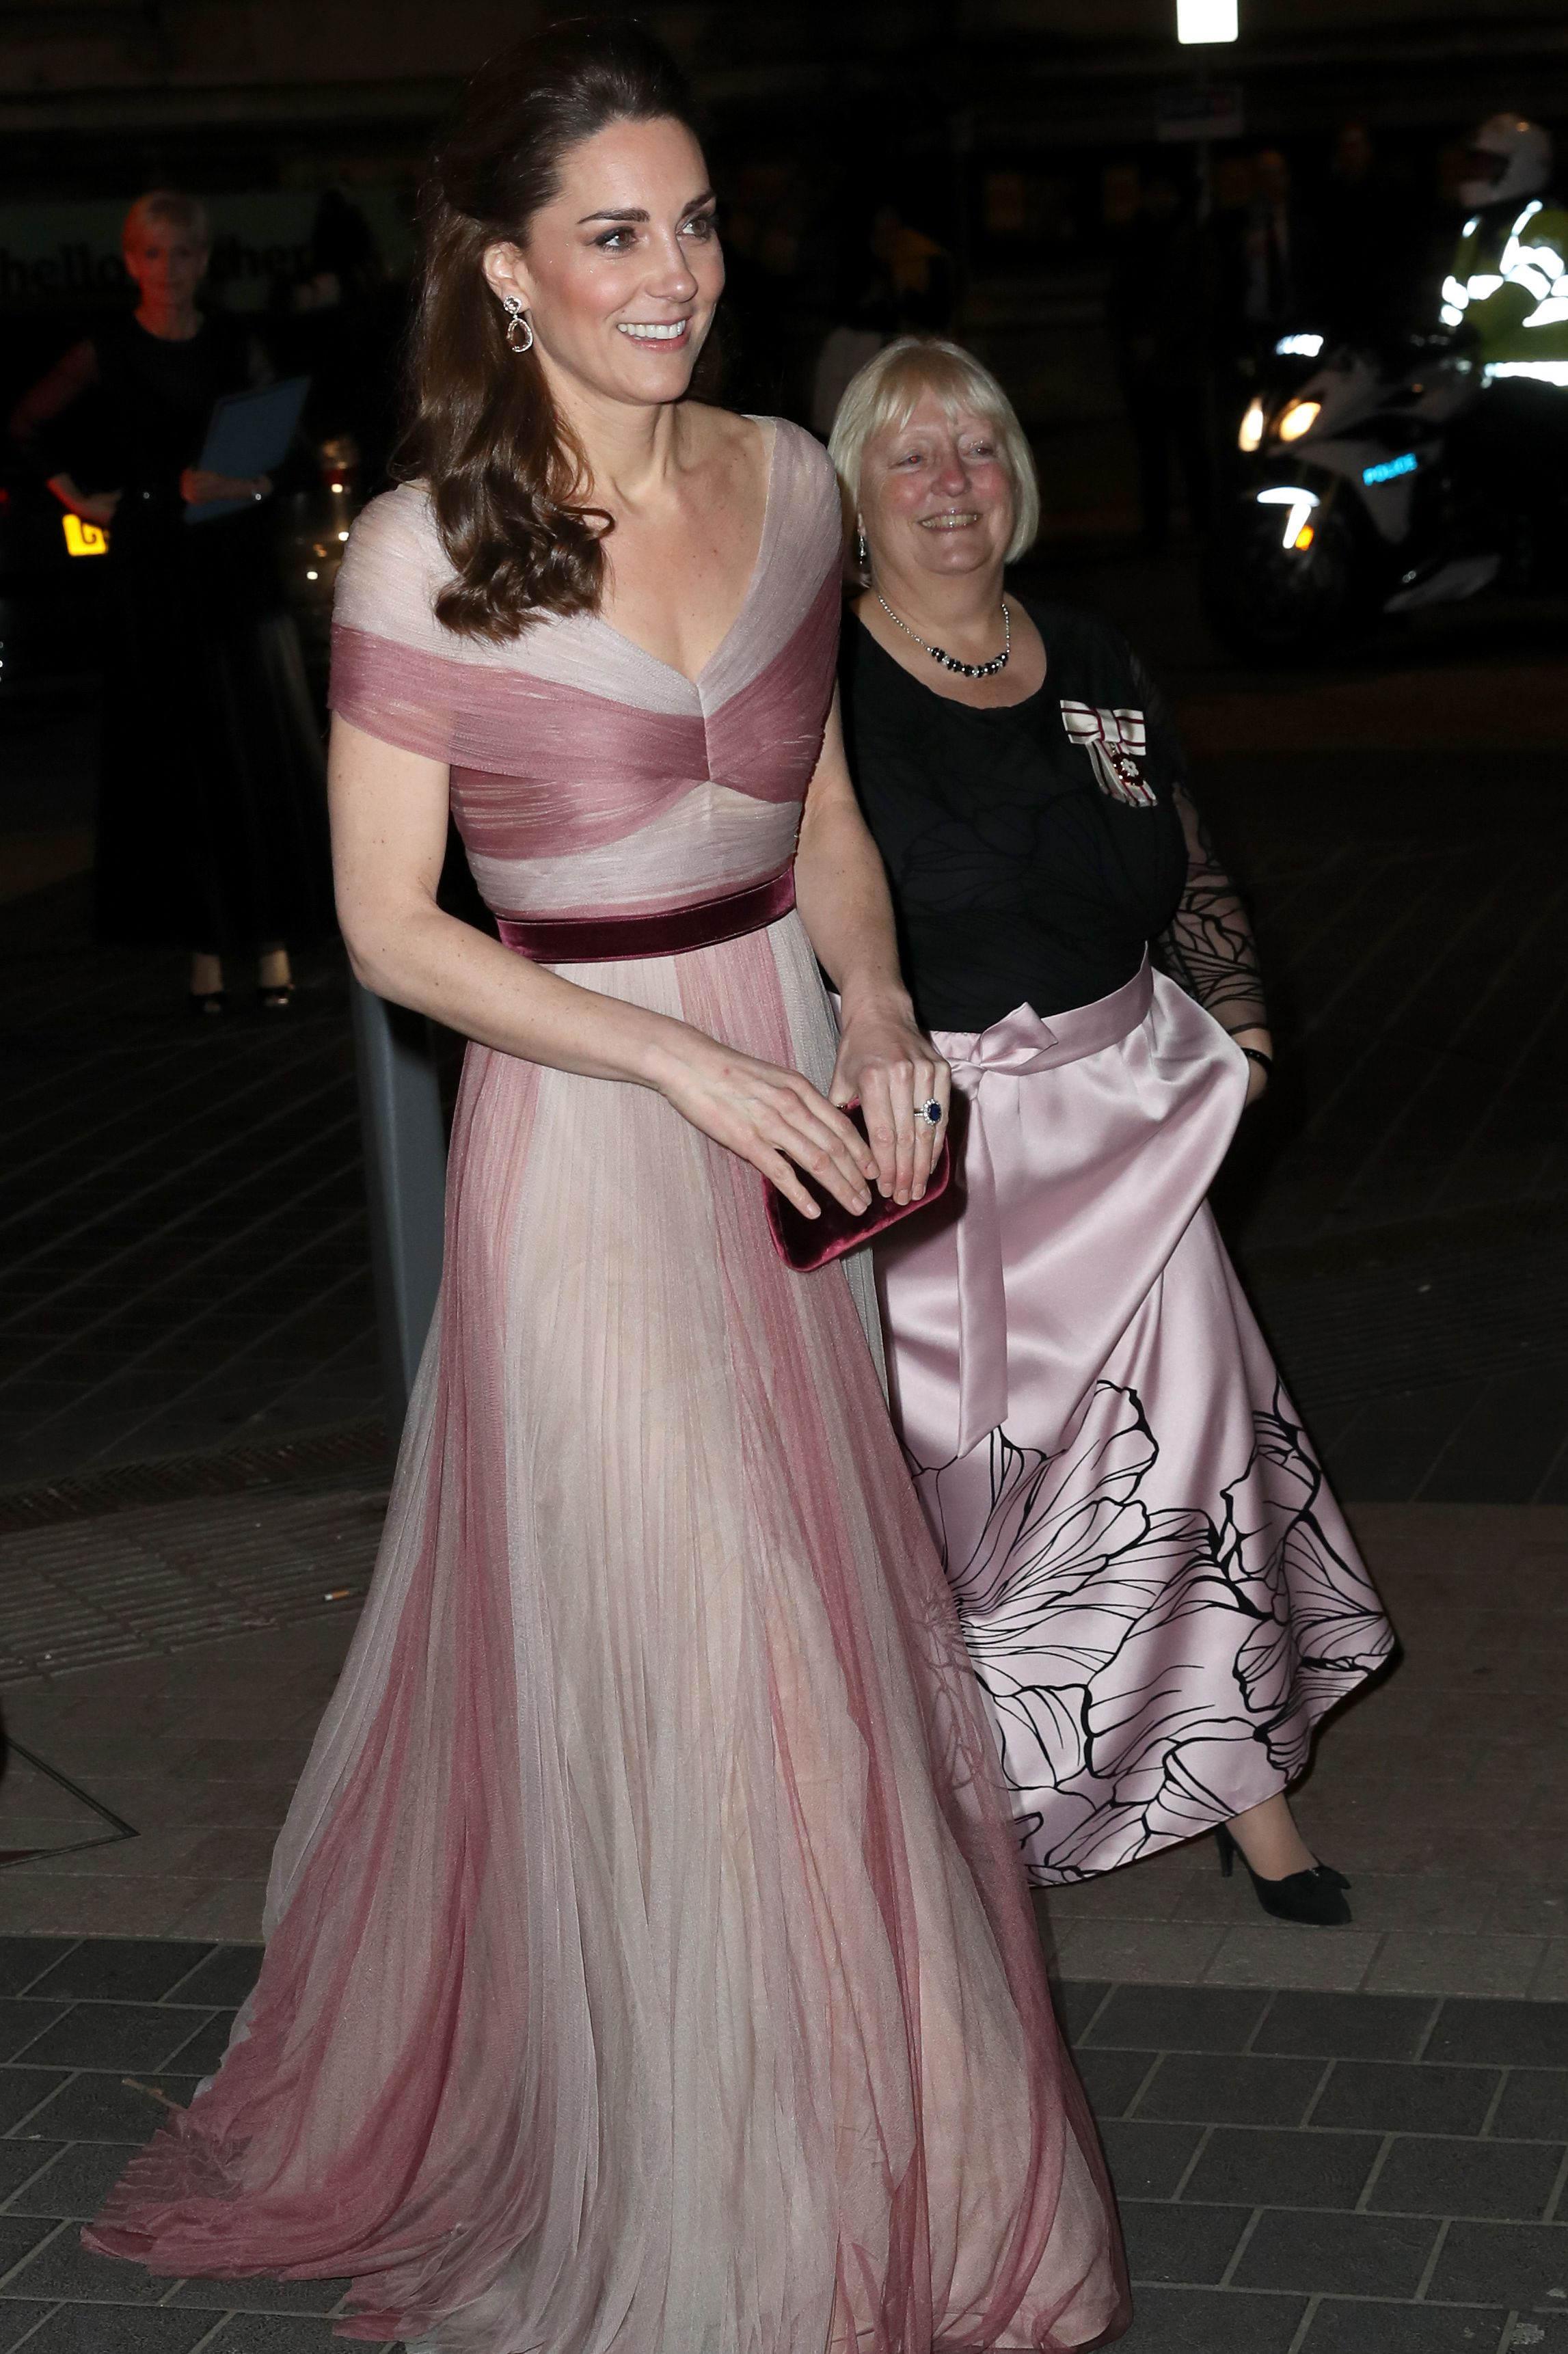 The Duchess Of Cambridge Attends 100 Women In Finance Gala Dinner